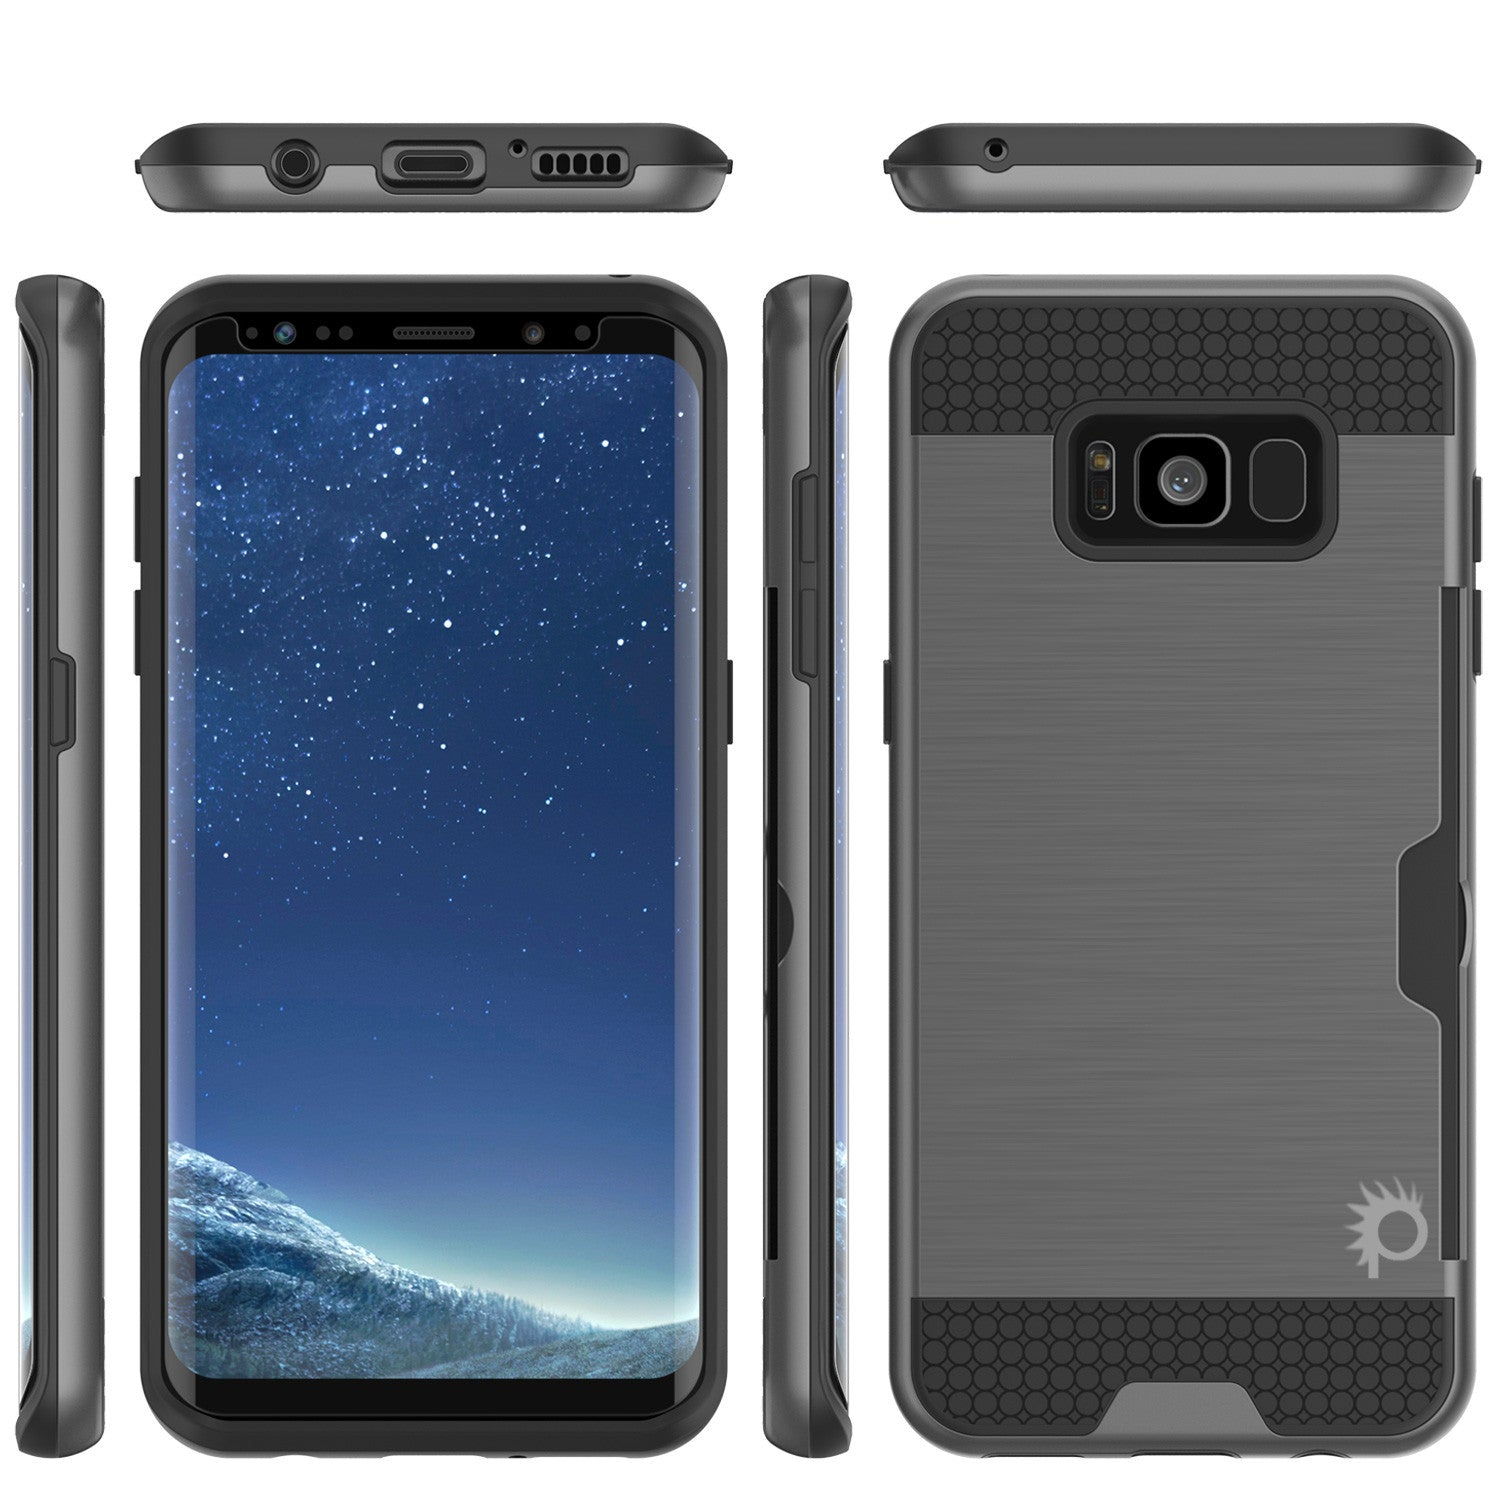 Galaxy S8 Plus Case, PUNKcase [SLOT Series] [Slim Fit] Dual-Layer Armor Cover w/Integrated Anti-Shock System, Credit Card Slot & PunkShield Screen Protector for Samsung Galaxy S8+ [Grey]